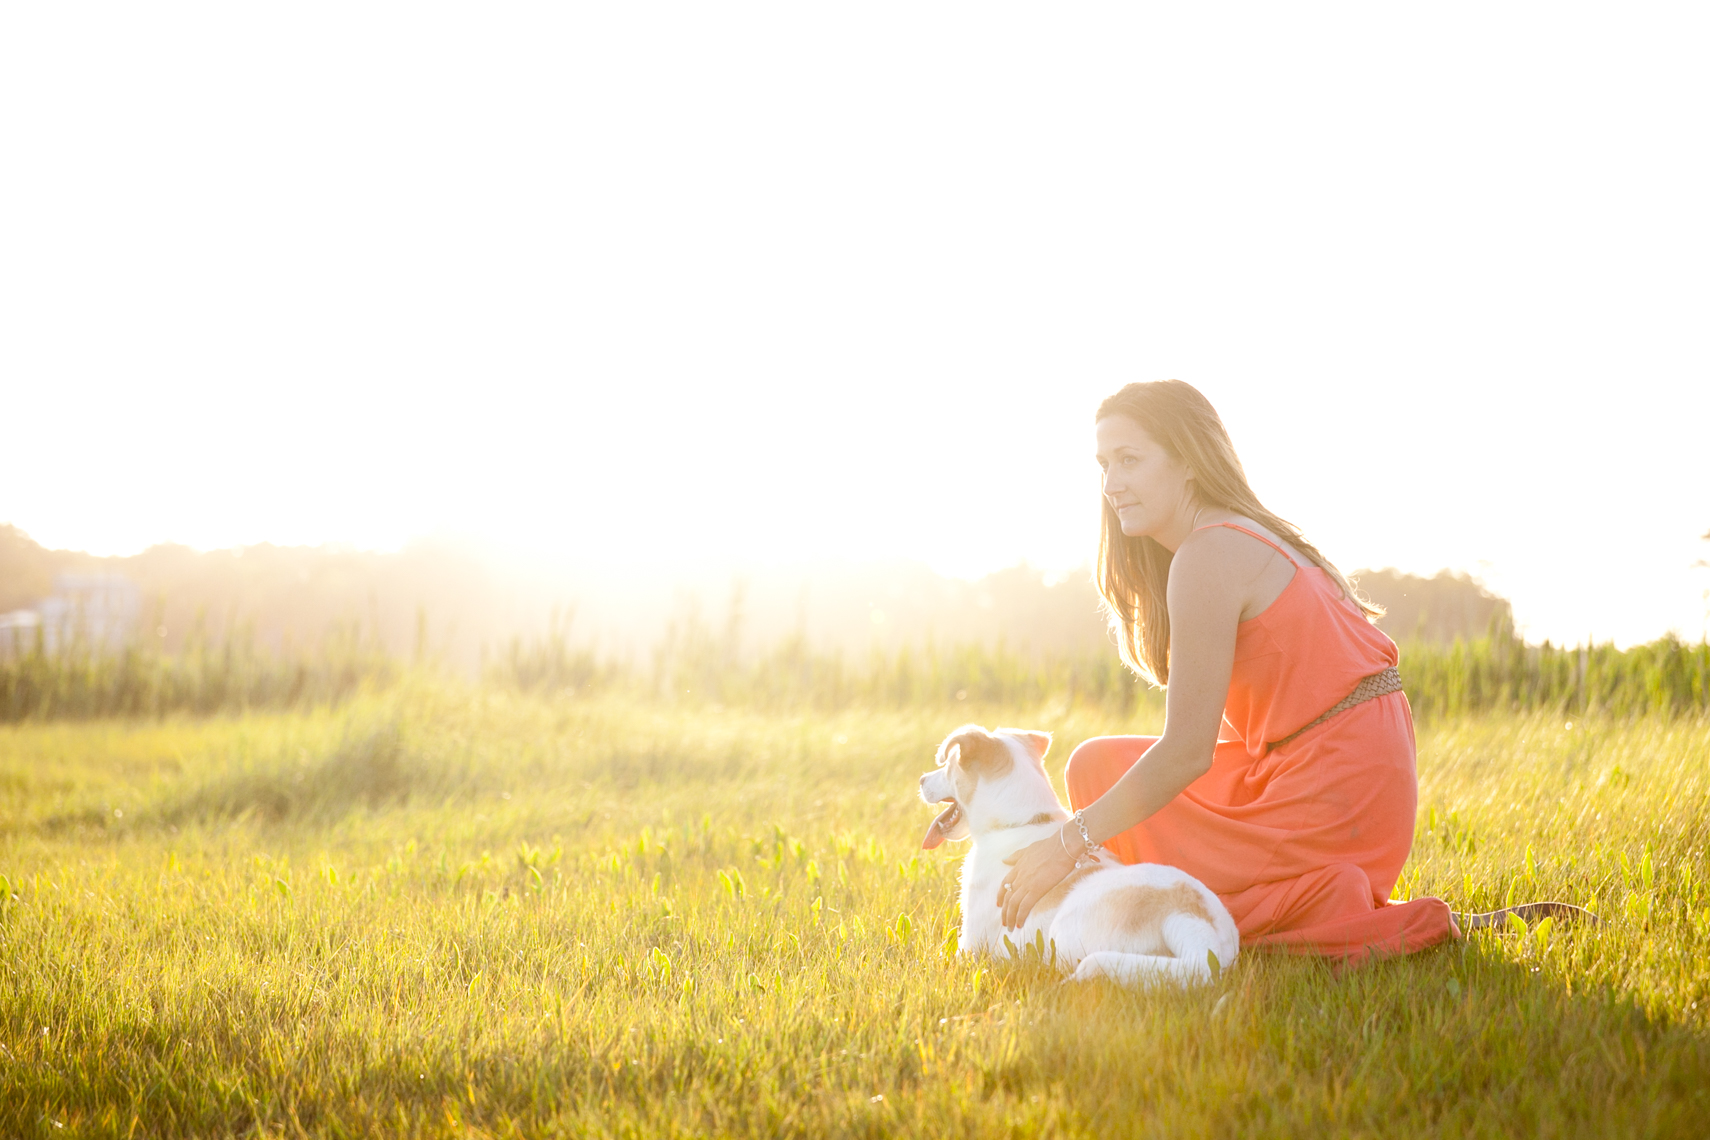 Sunlit portrait of a girl and her rescue